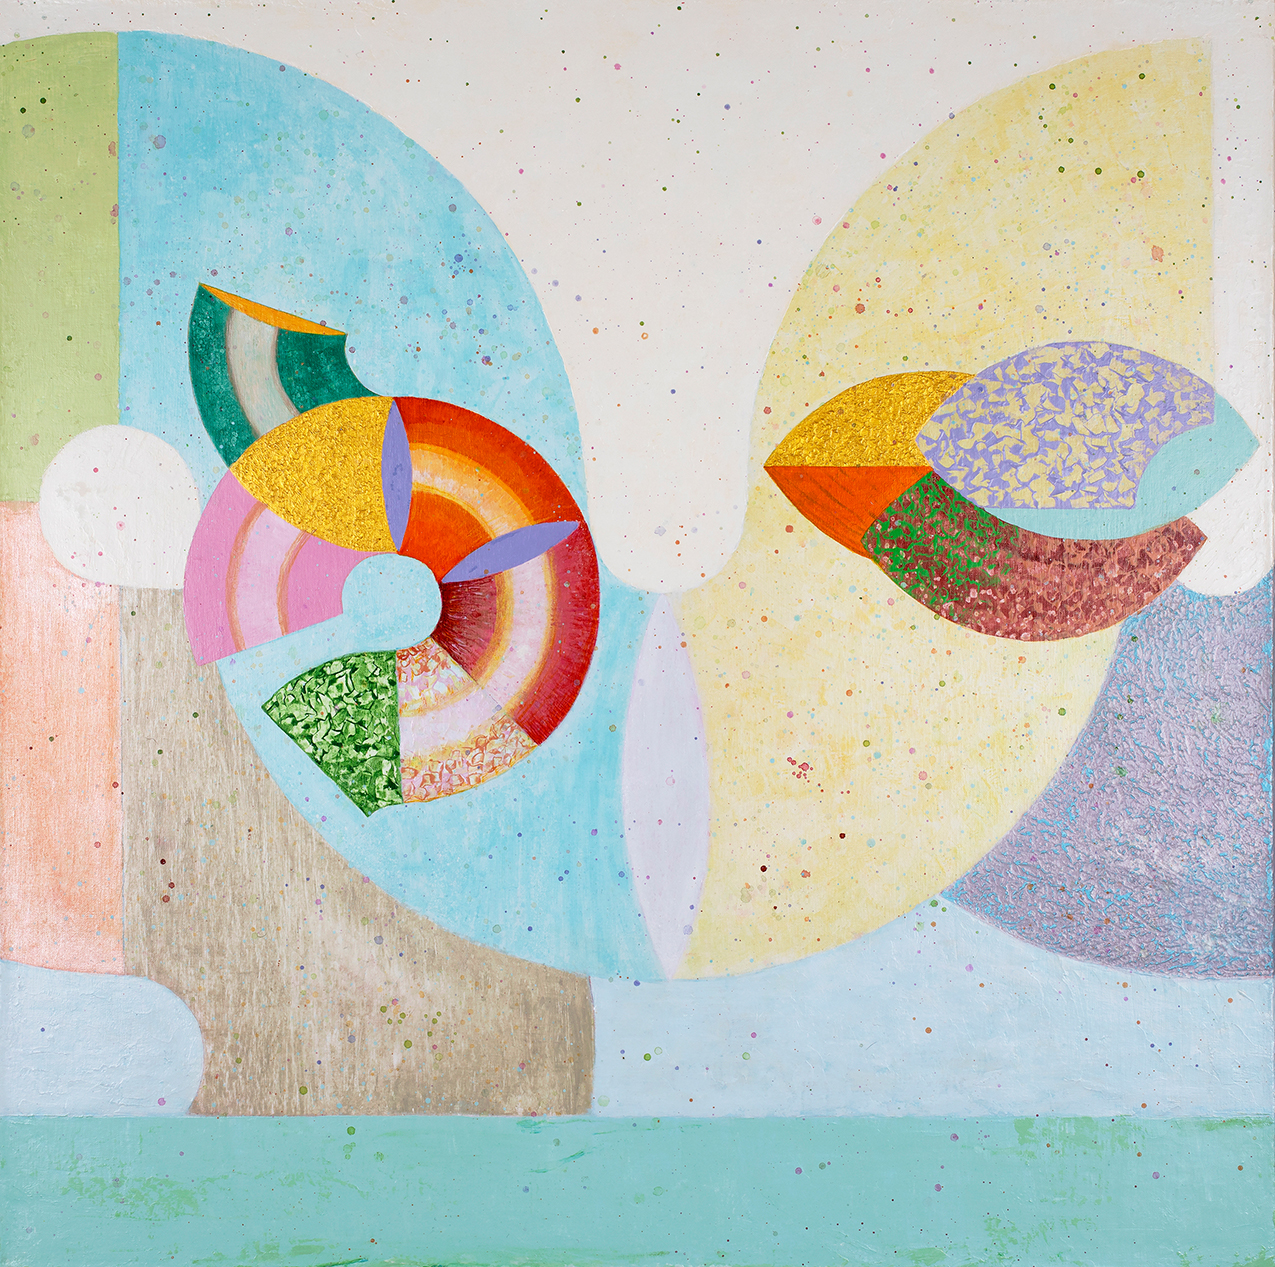 Moonspeaker by Mateo Galvano: colorful geometric painting